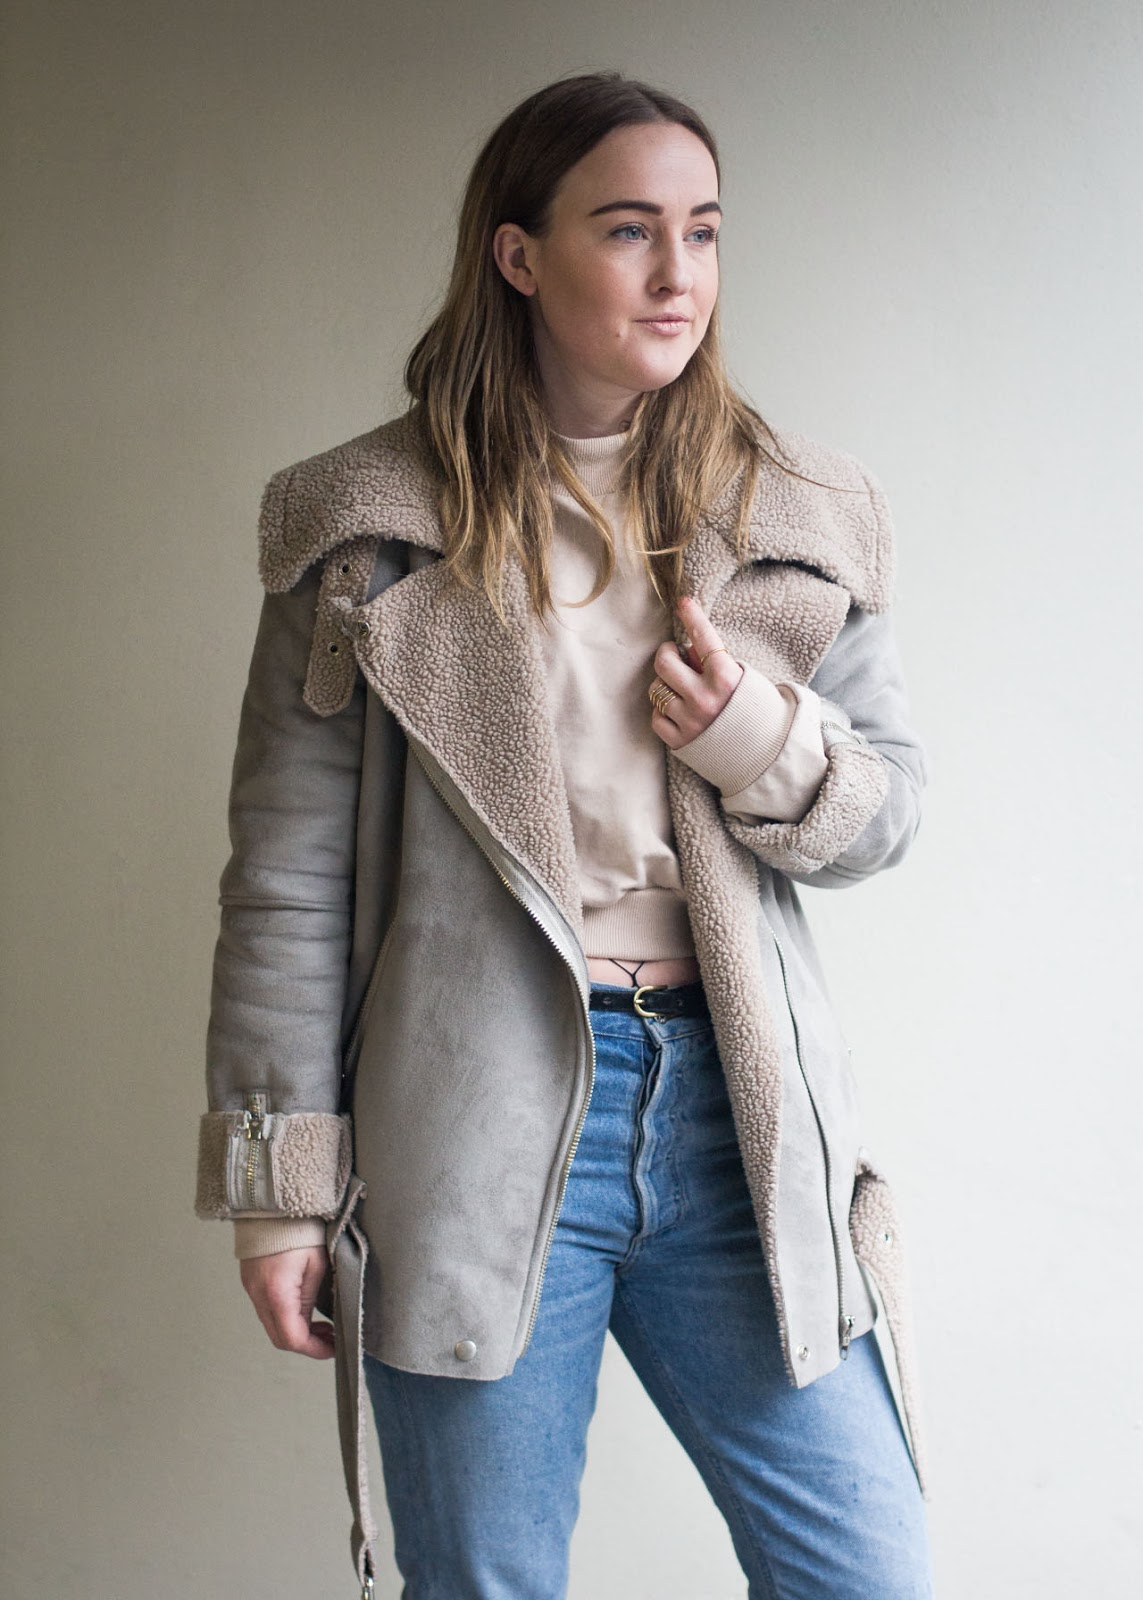 Fashion Trends - Canadian Style Blog - Winter outfit - fishnets, loafers, mom jeans